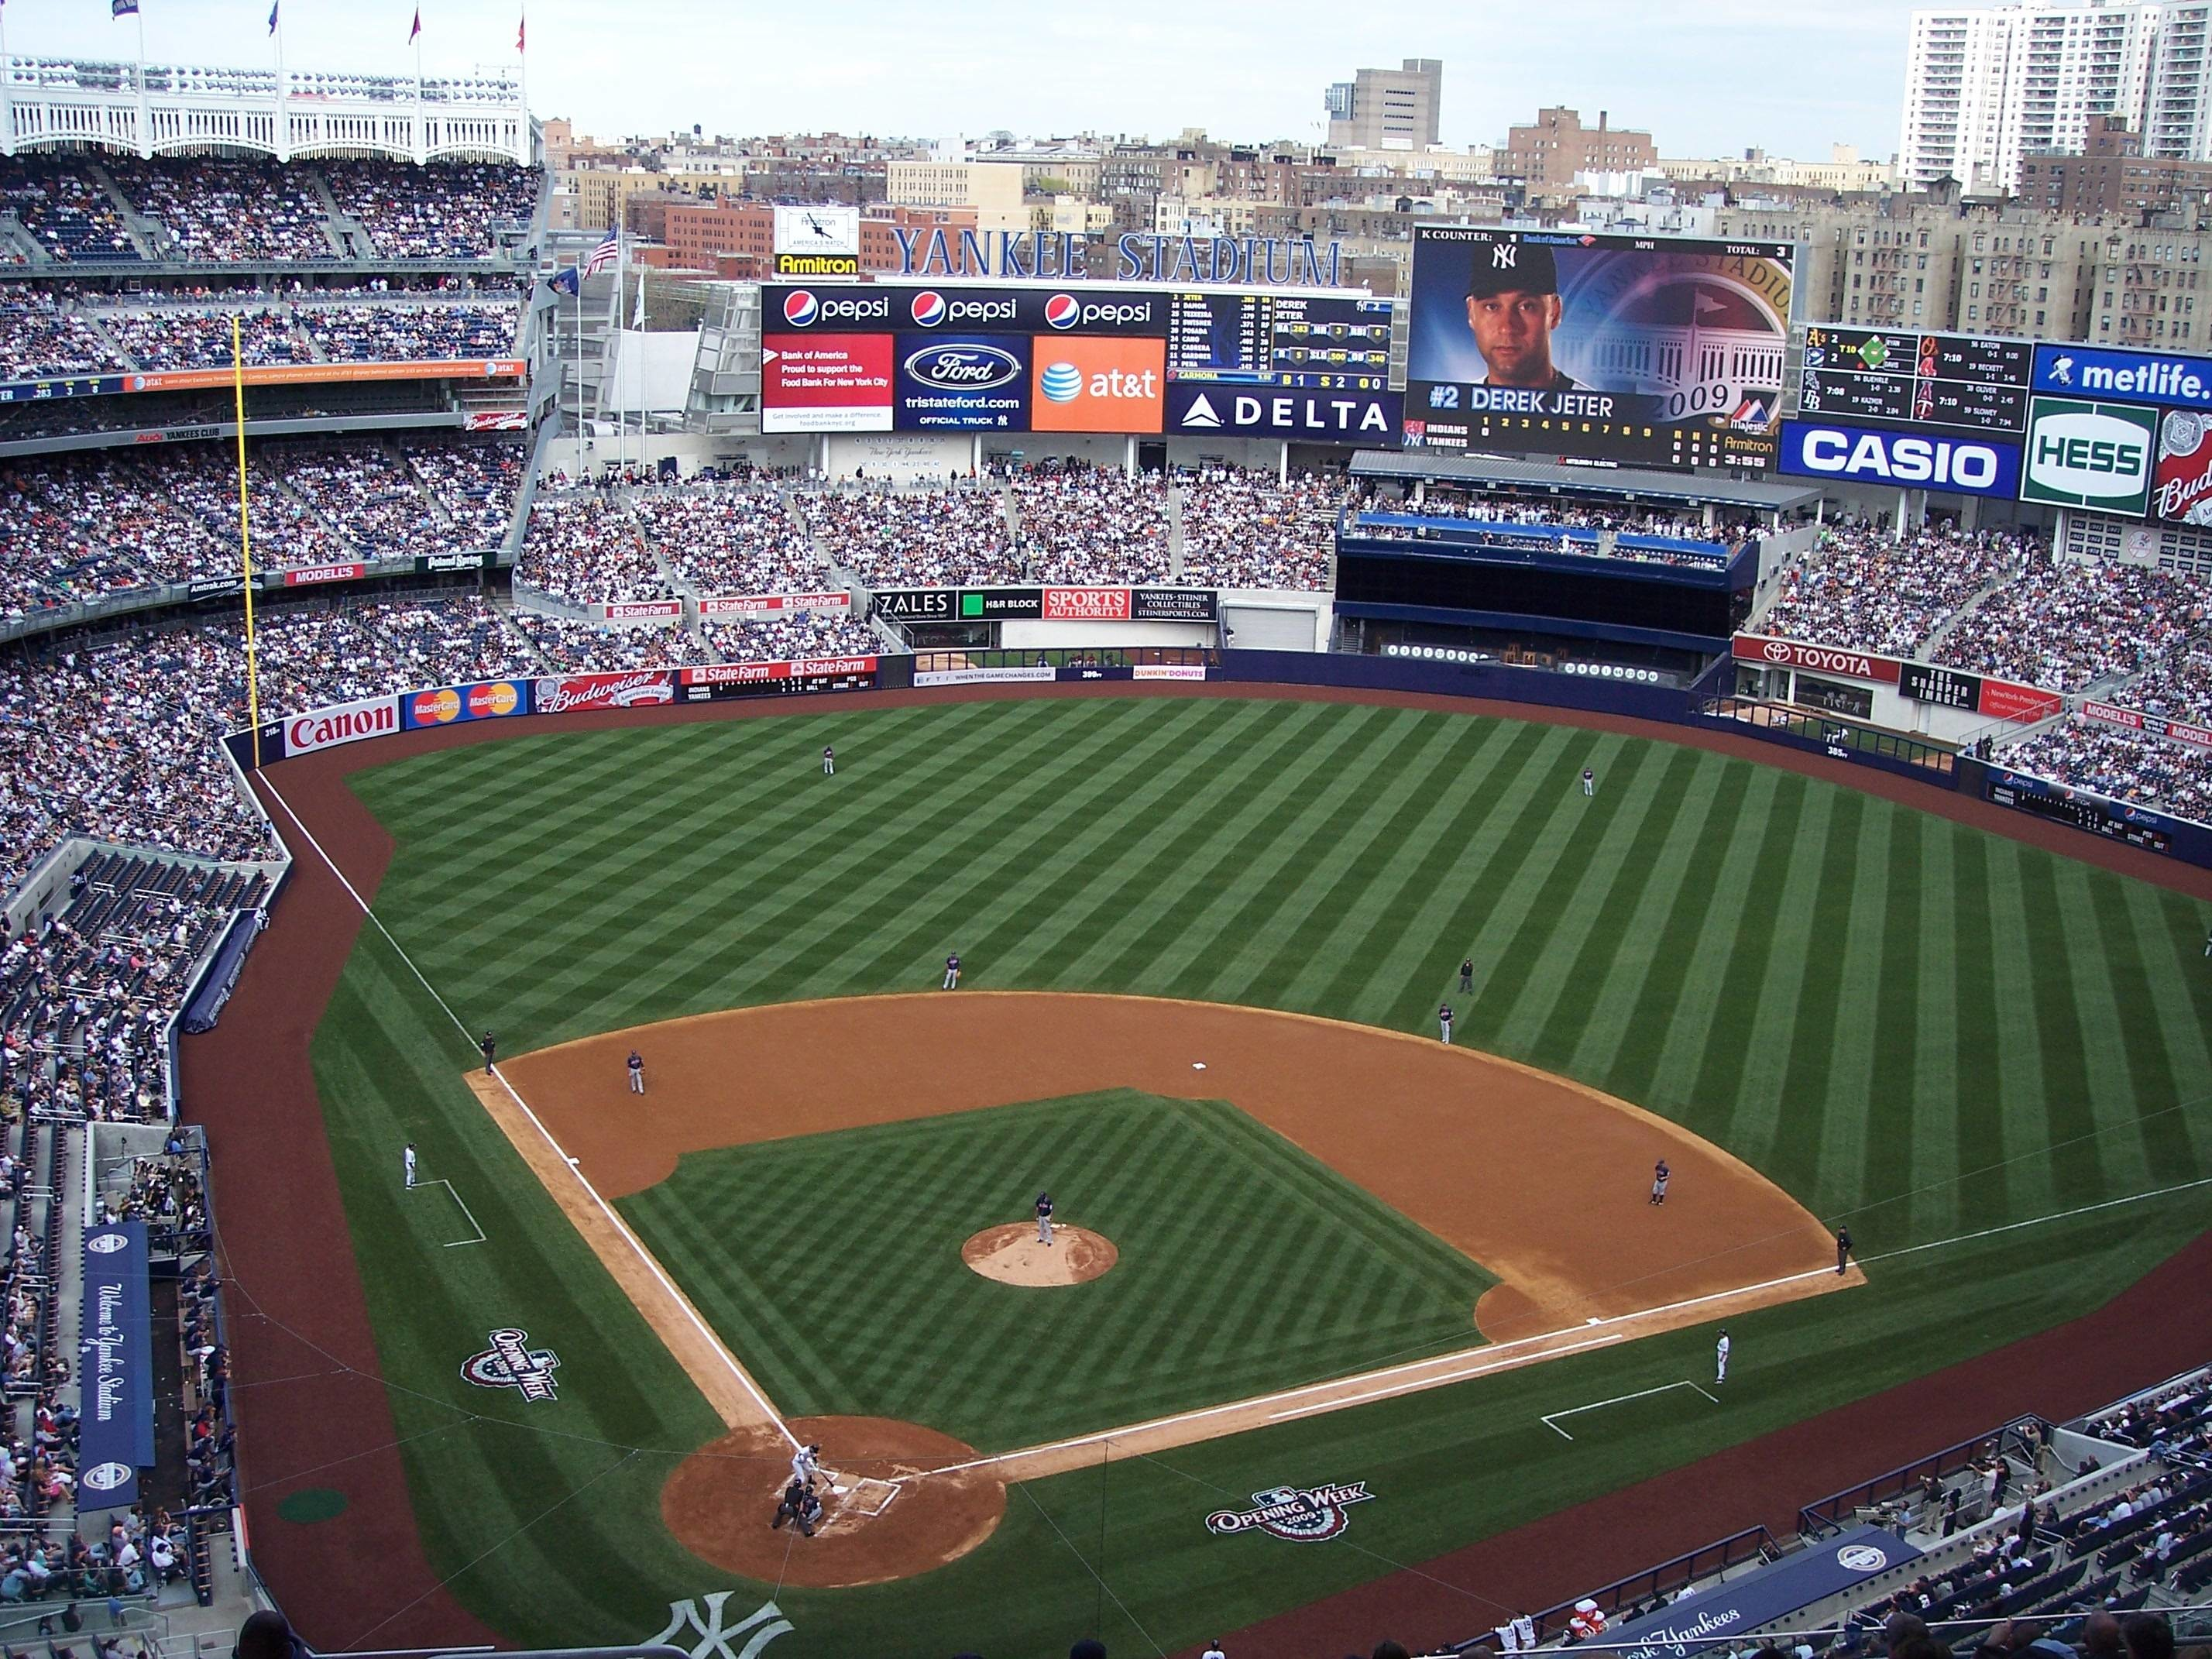 Yankee Stadium Desktop Background Download Free HD Wallpapers